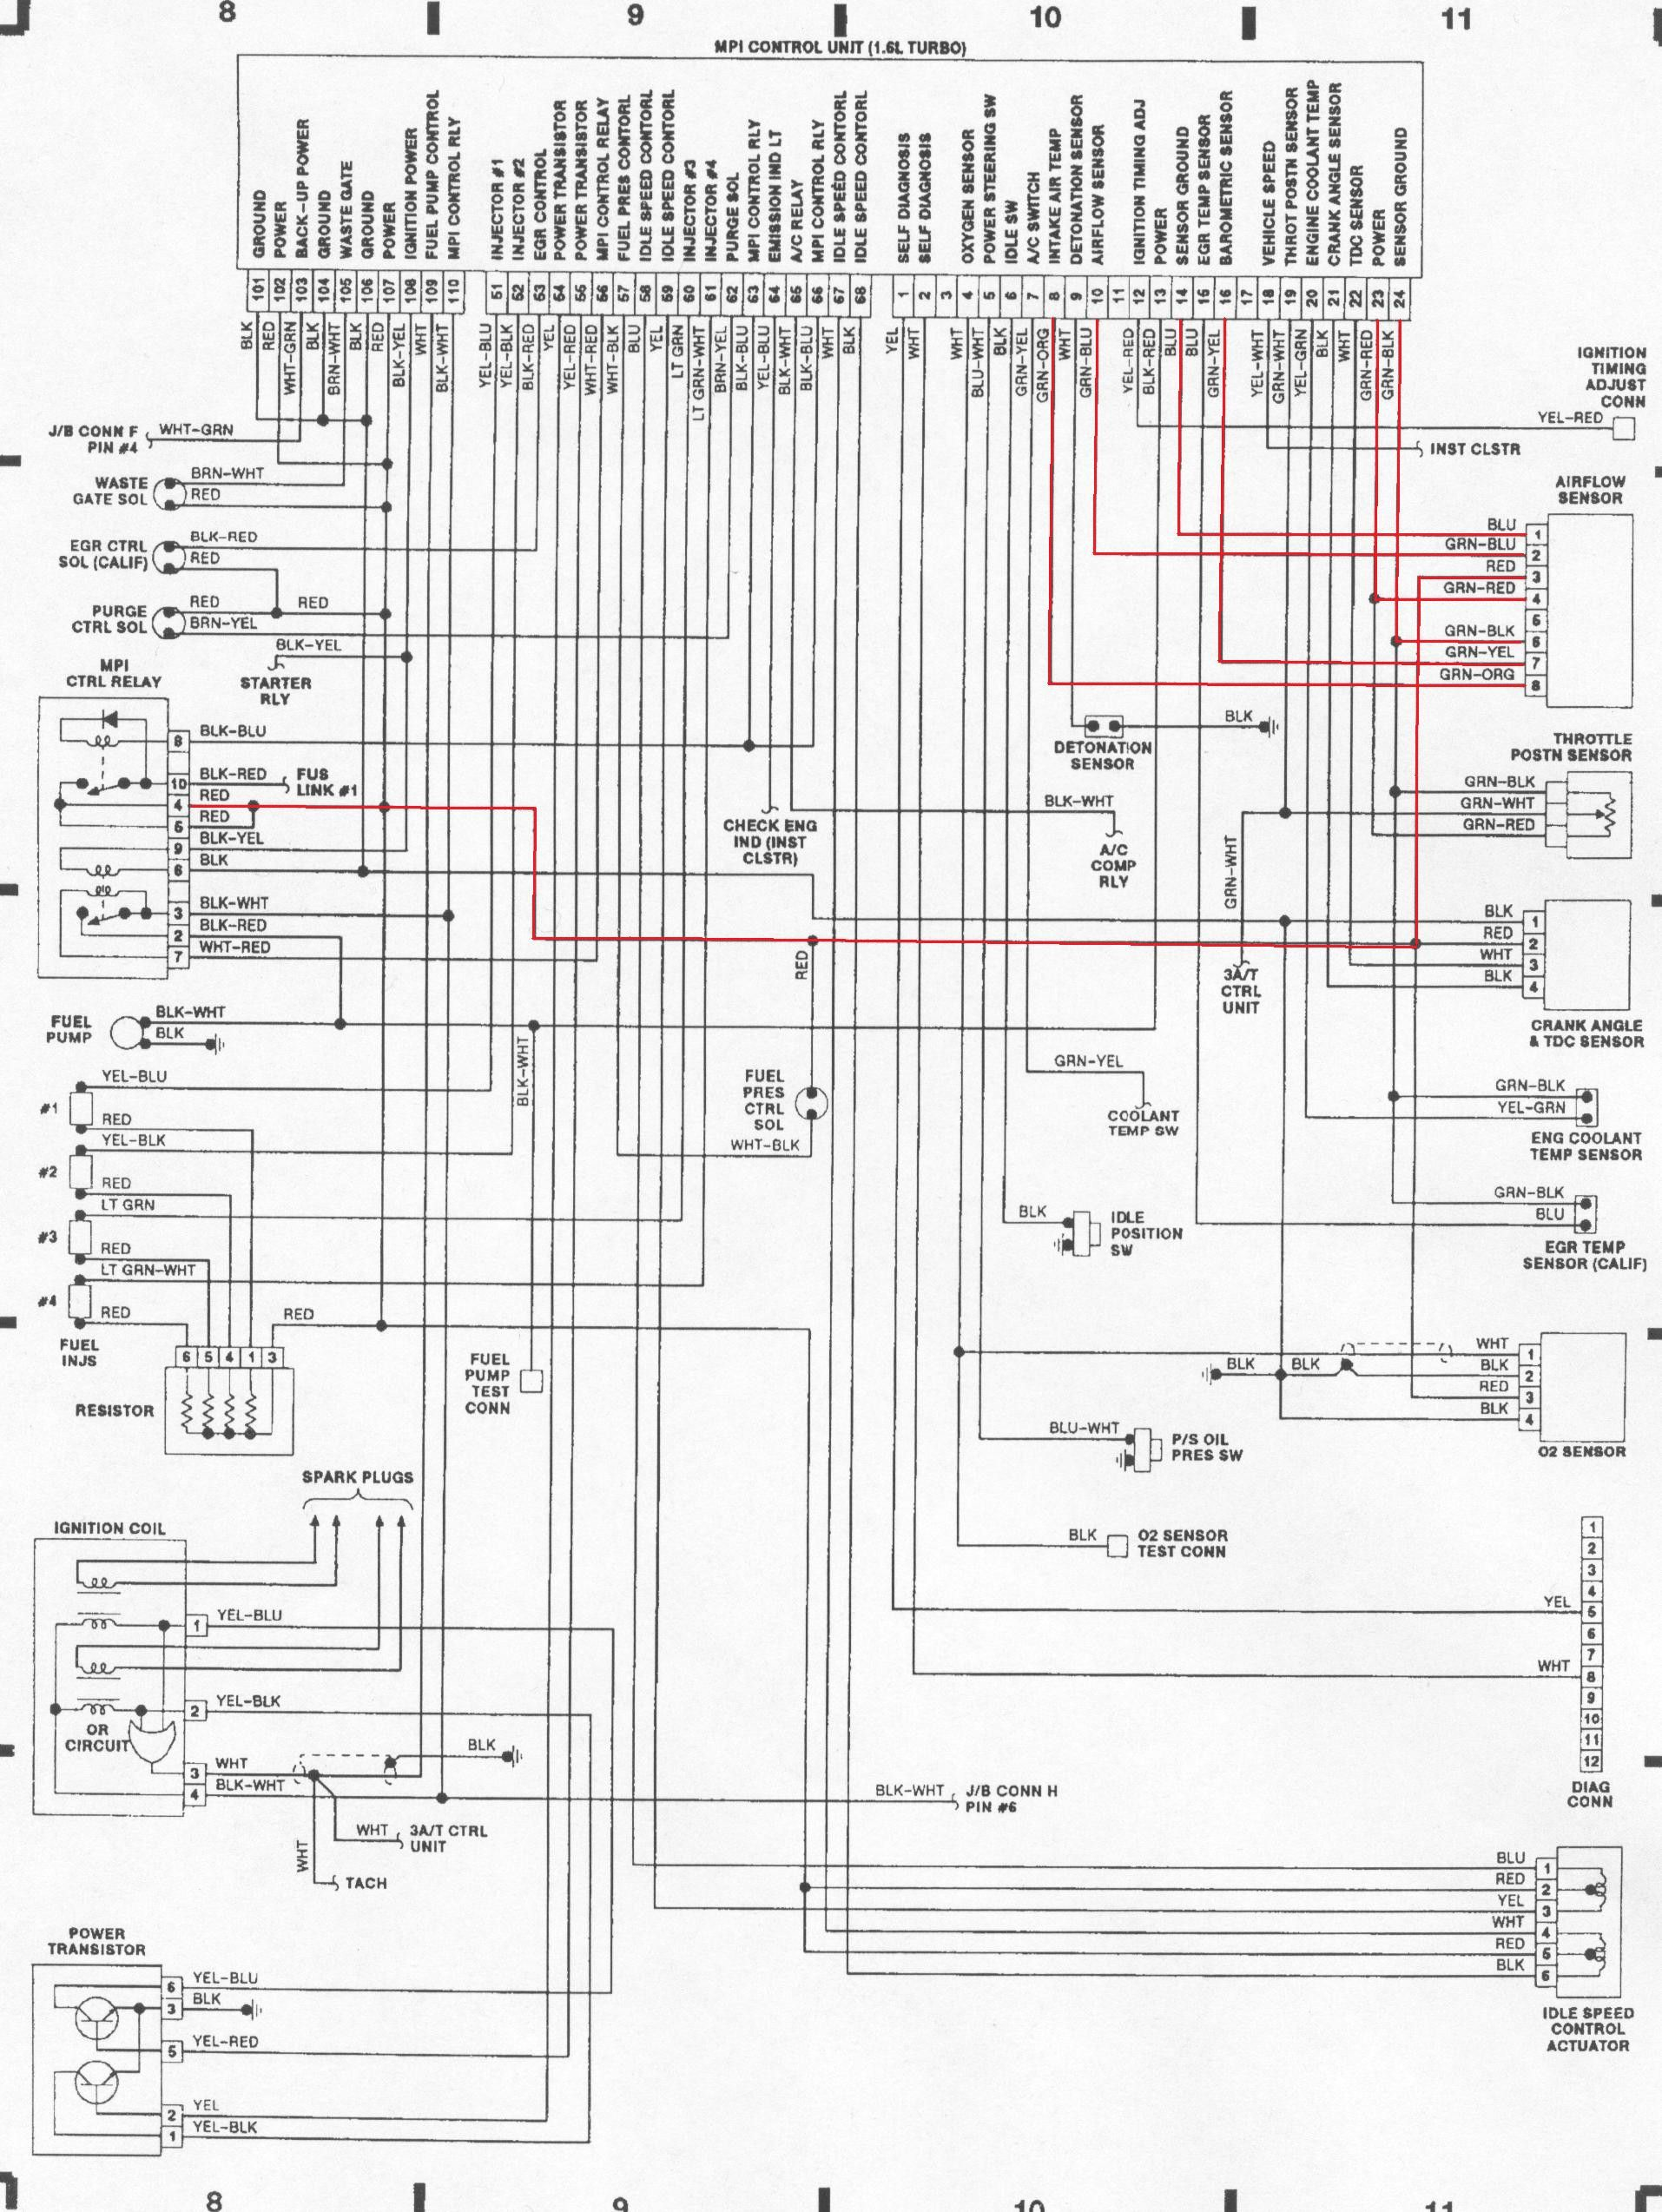 Wiring Diagram 4g15 Pdf Virtual Fretboard Inside Mitsubishi Mirage  Mitsubishi Mirage, Diagram, Pdf